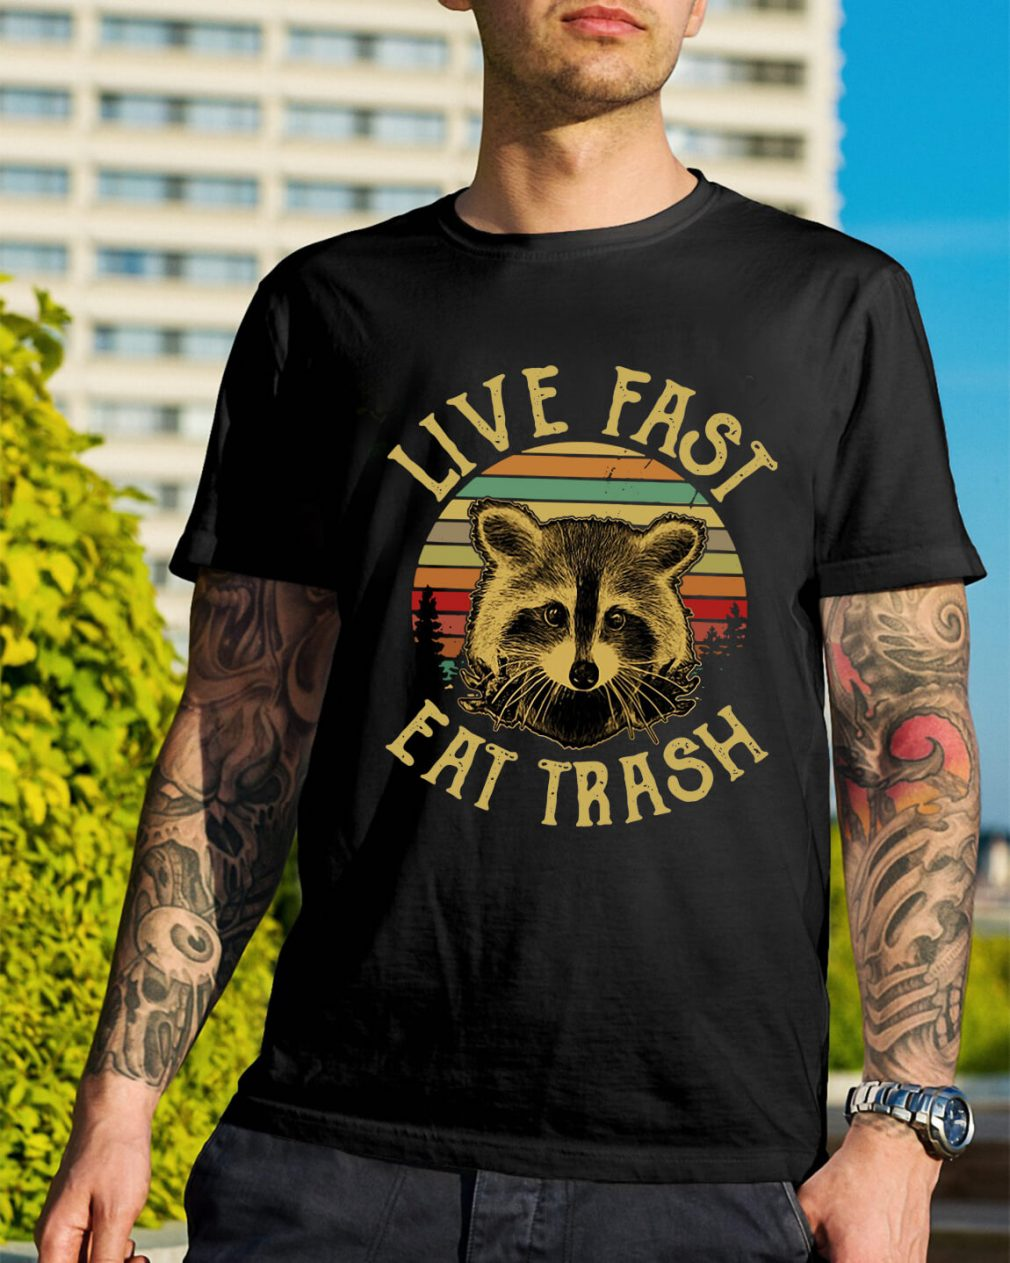 The sunset Raccoon live fast eat trash shirt